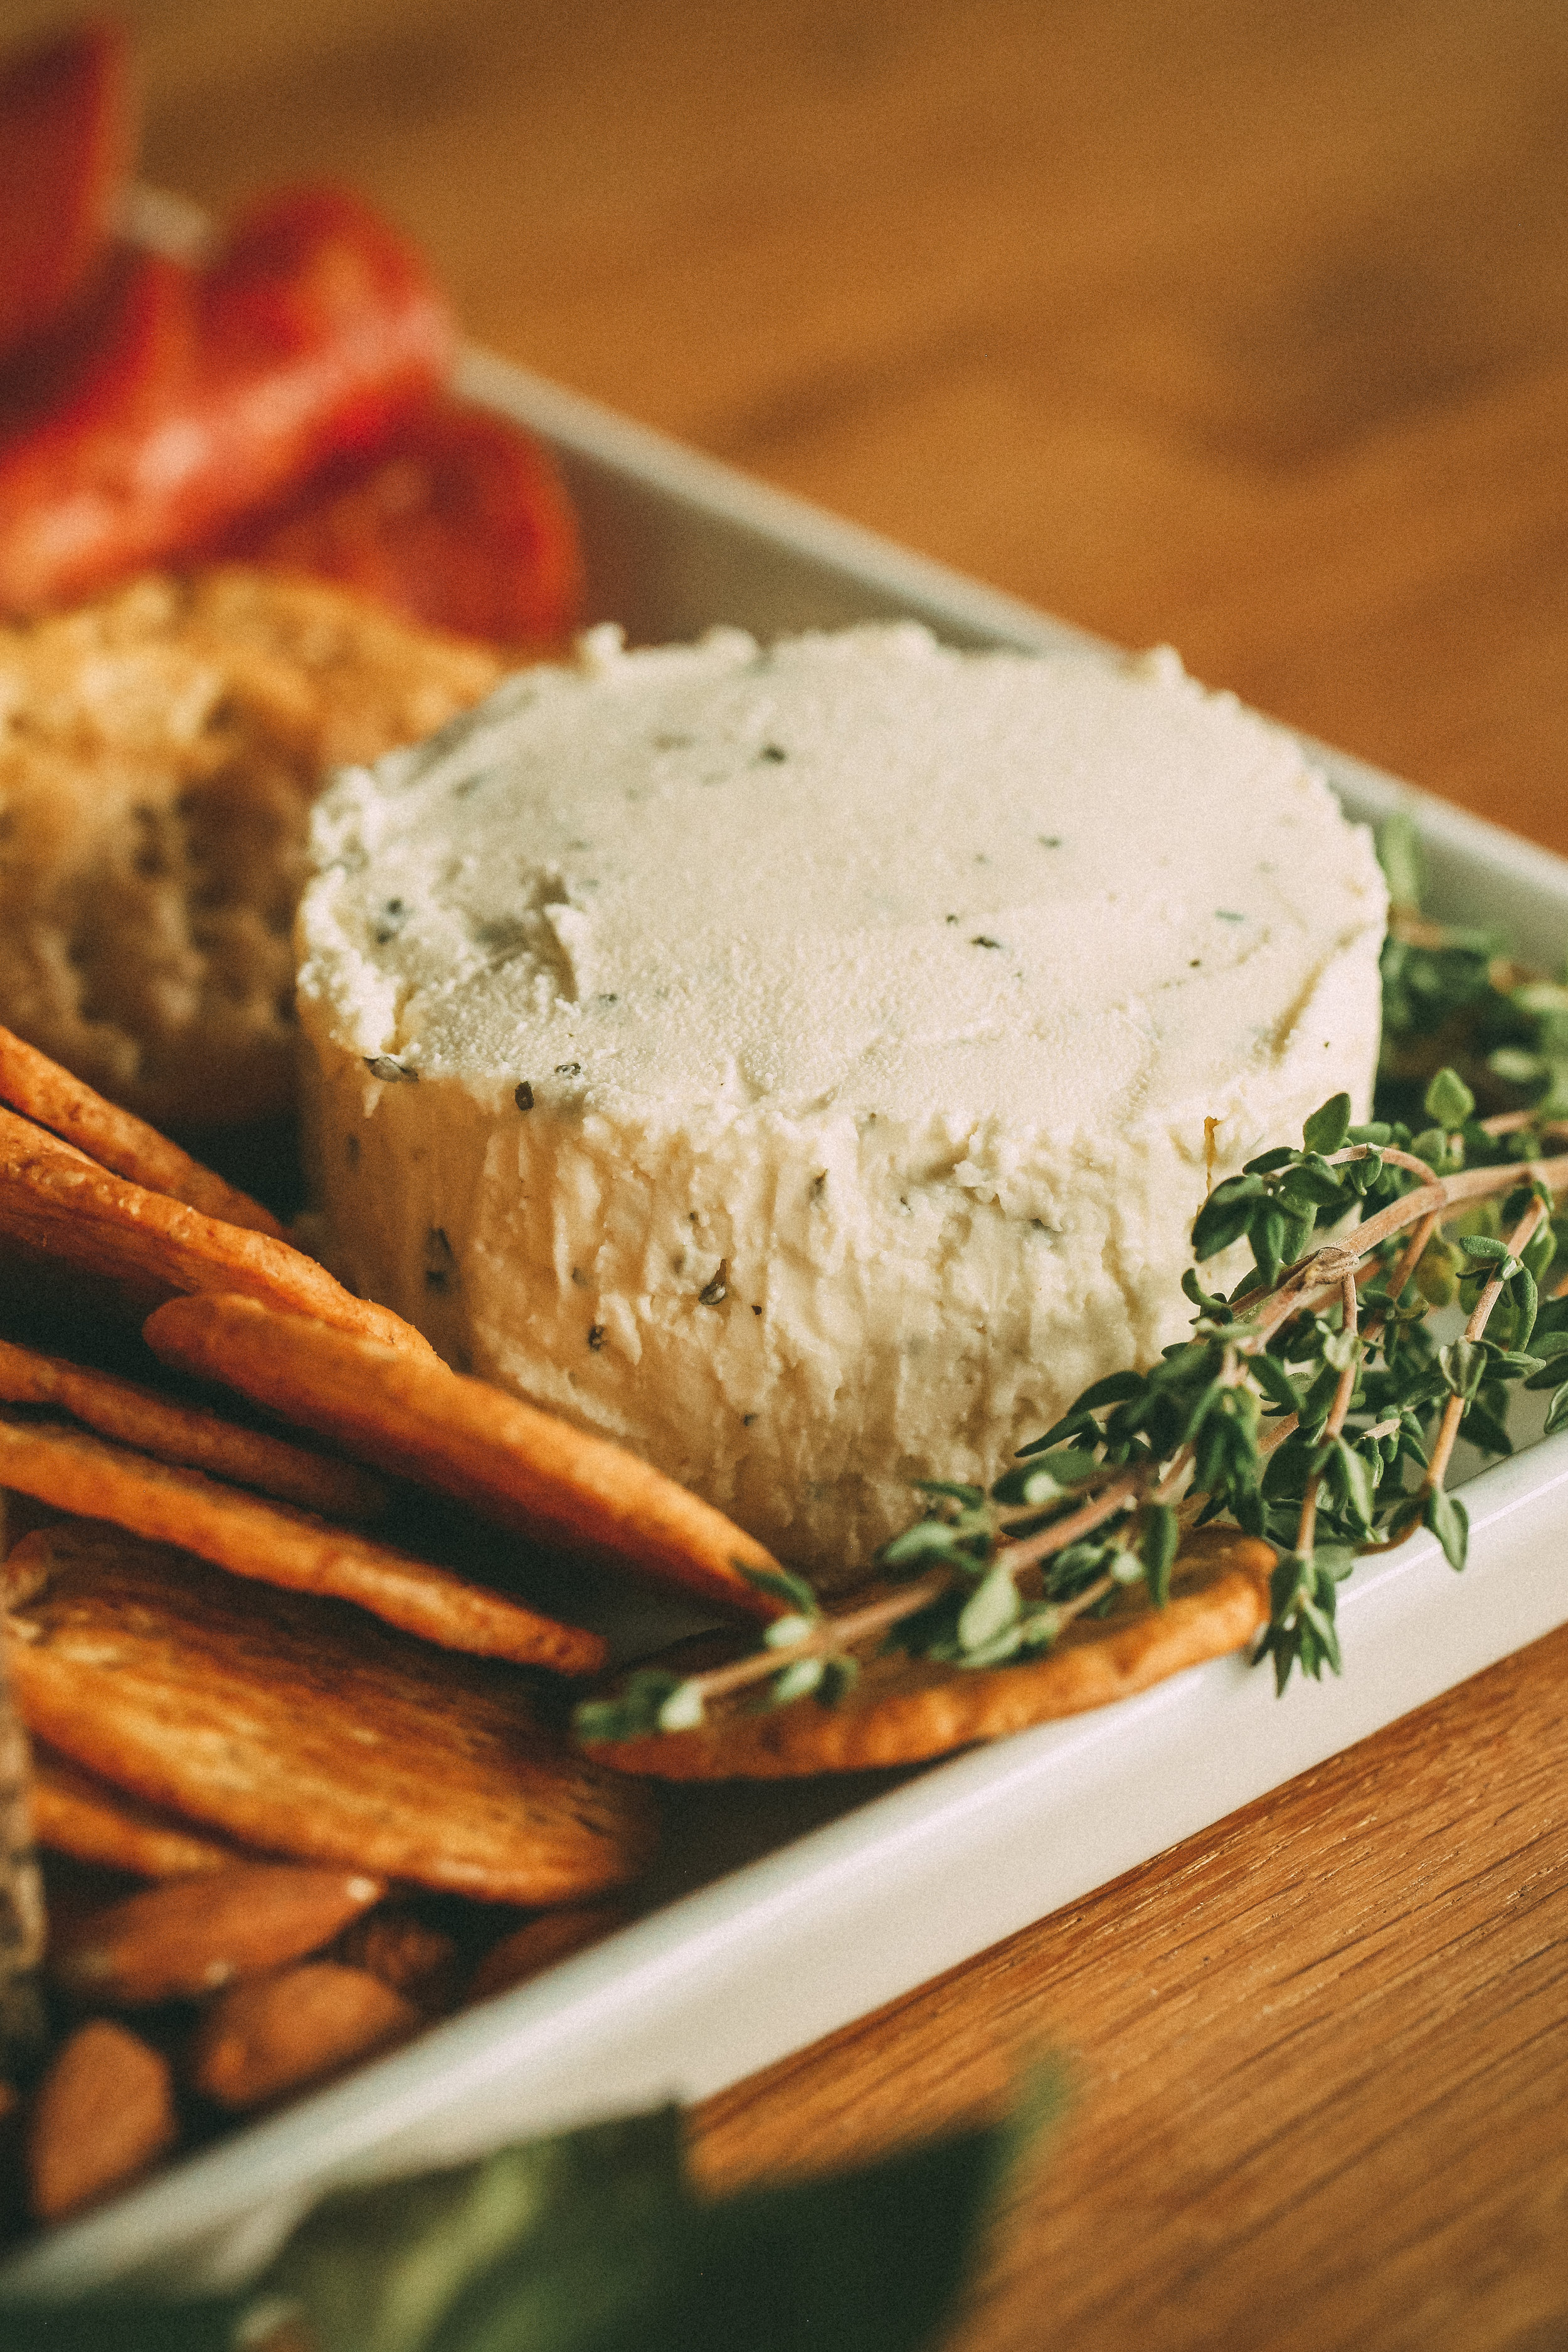 Boursin -A soft, spreadable, garlic and herb cheese. This one is always a crowd pleaser and the first to disappear